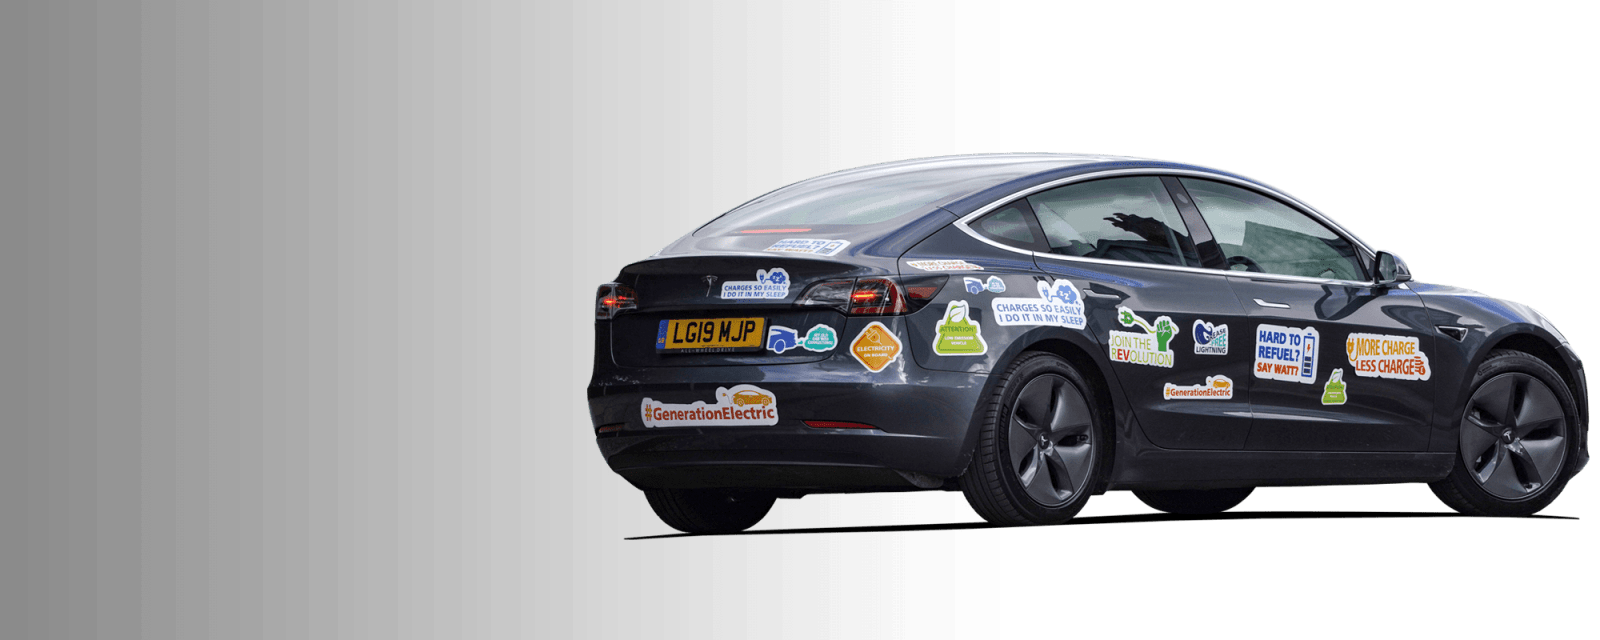 Tesla covered in bumper stickers